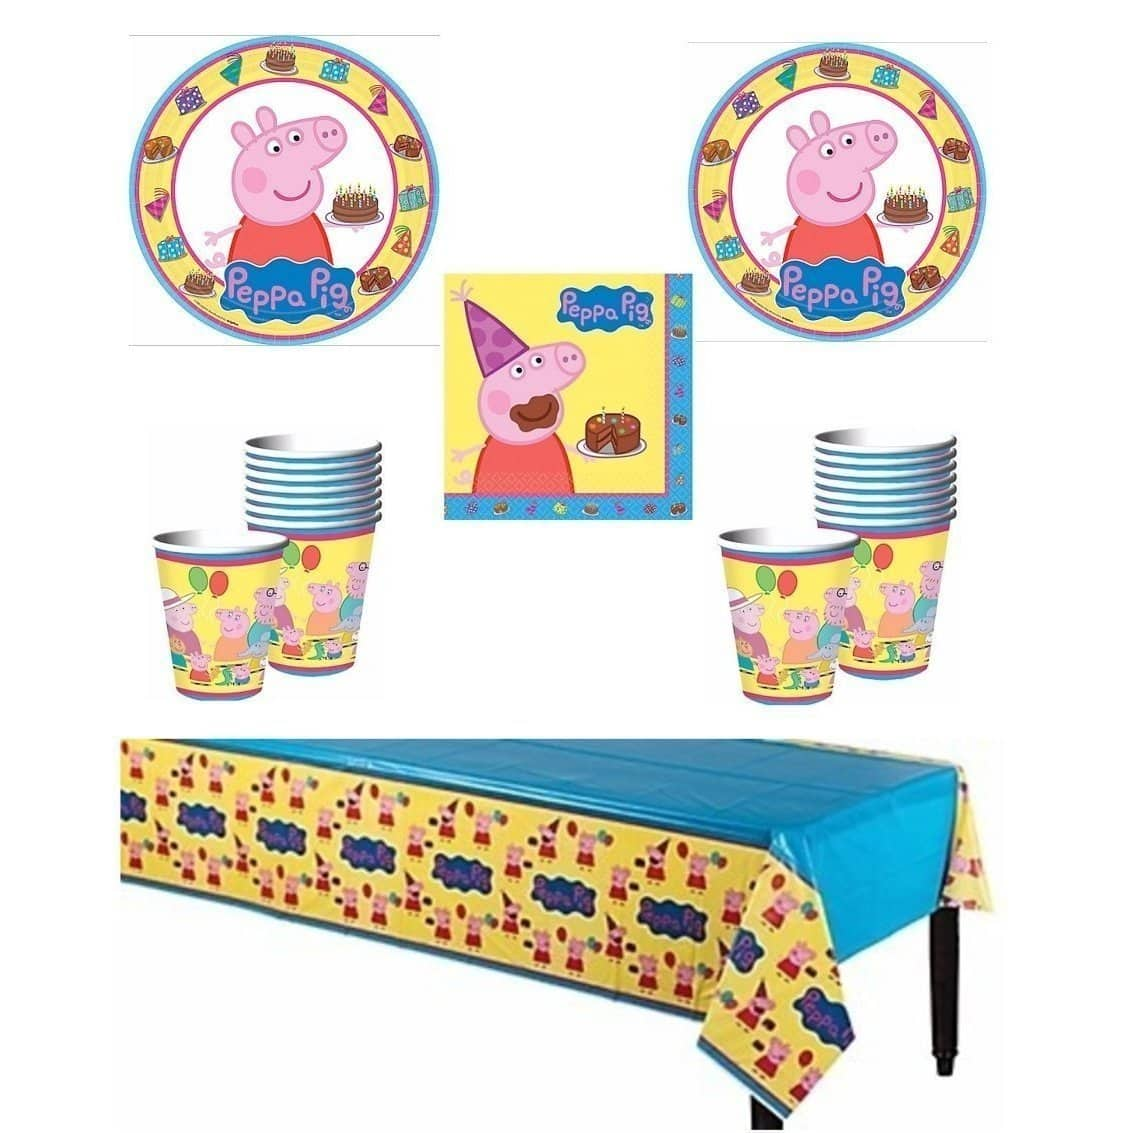 Peppa Pig Deluxe Party Supply Pack for 16 Guests